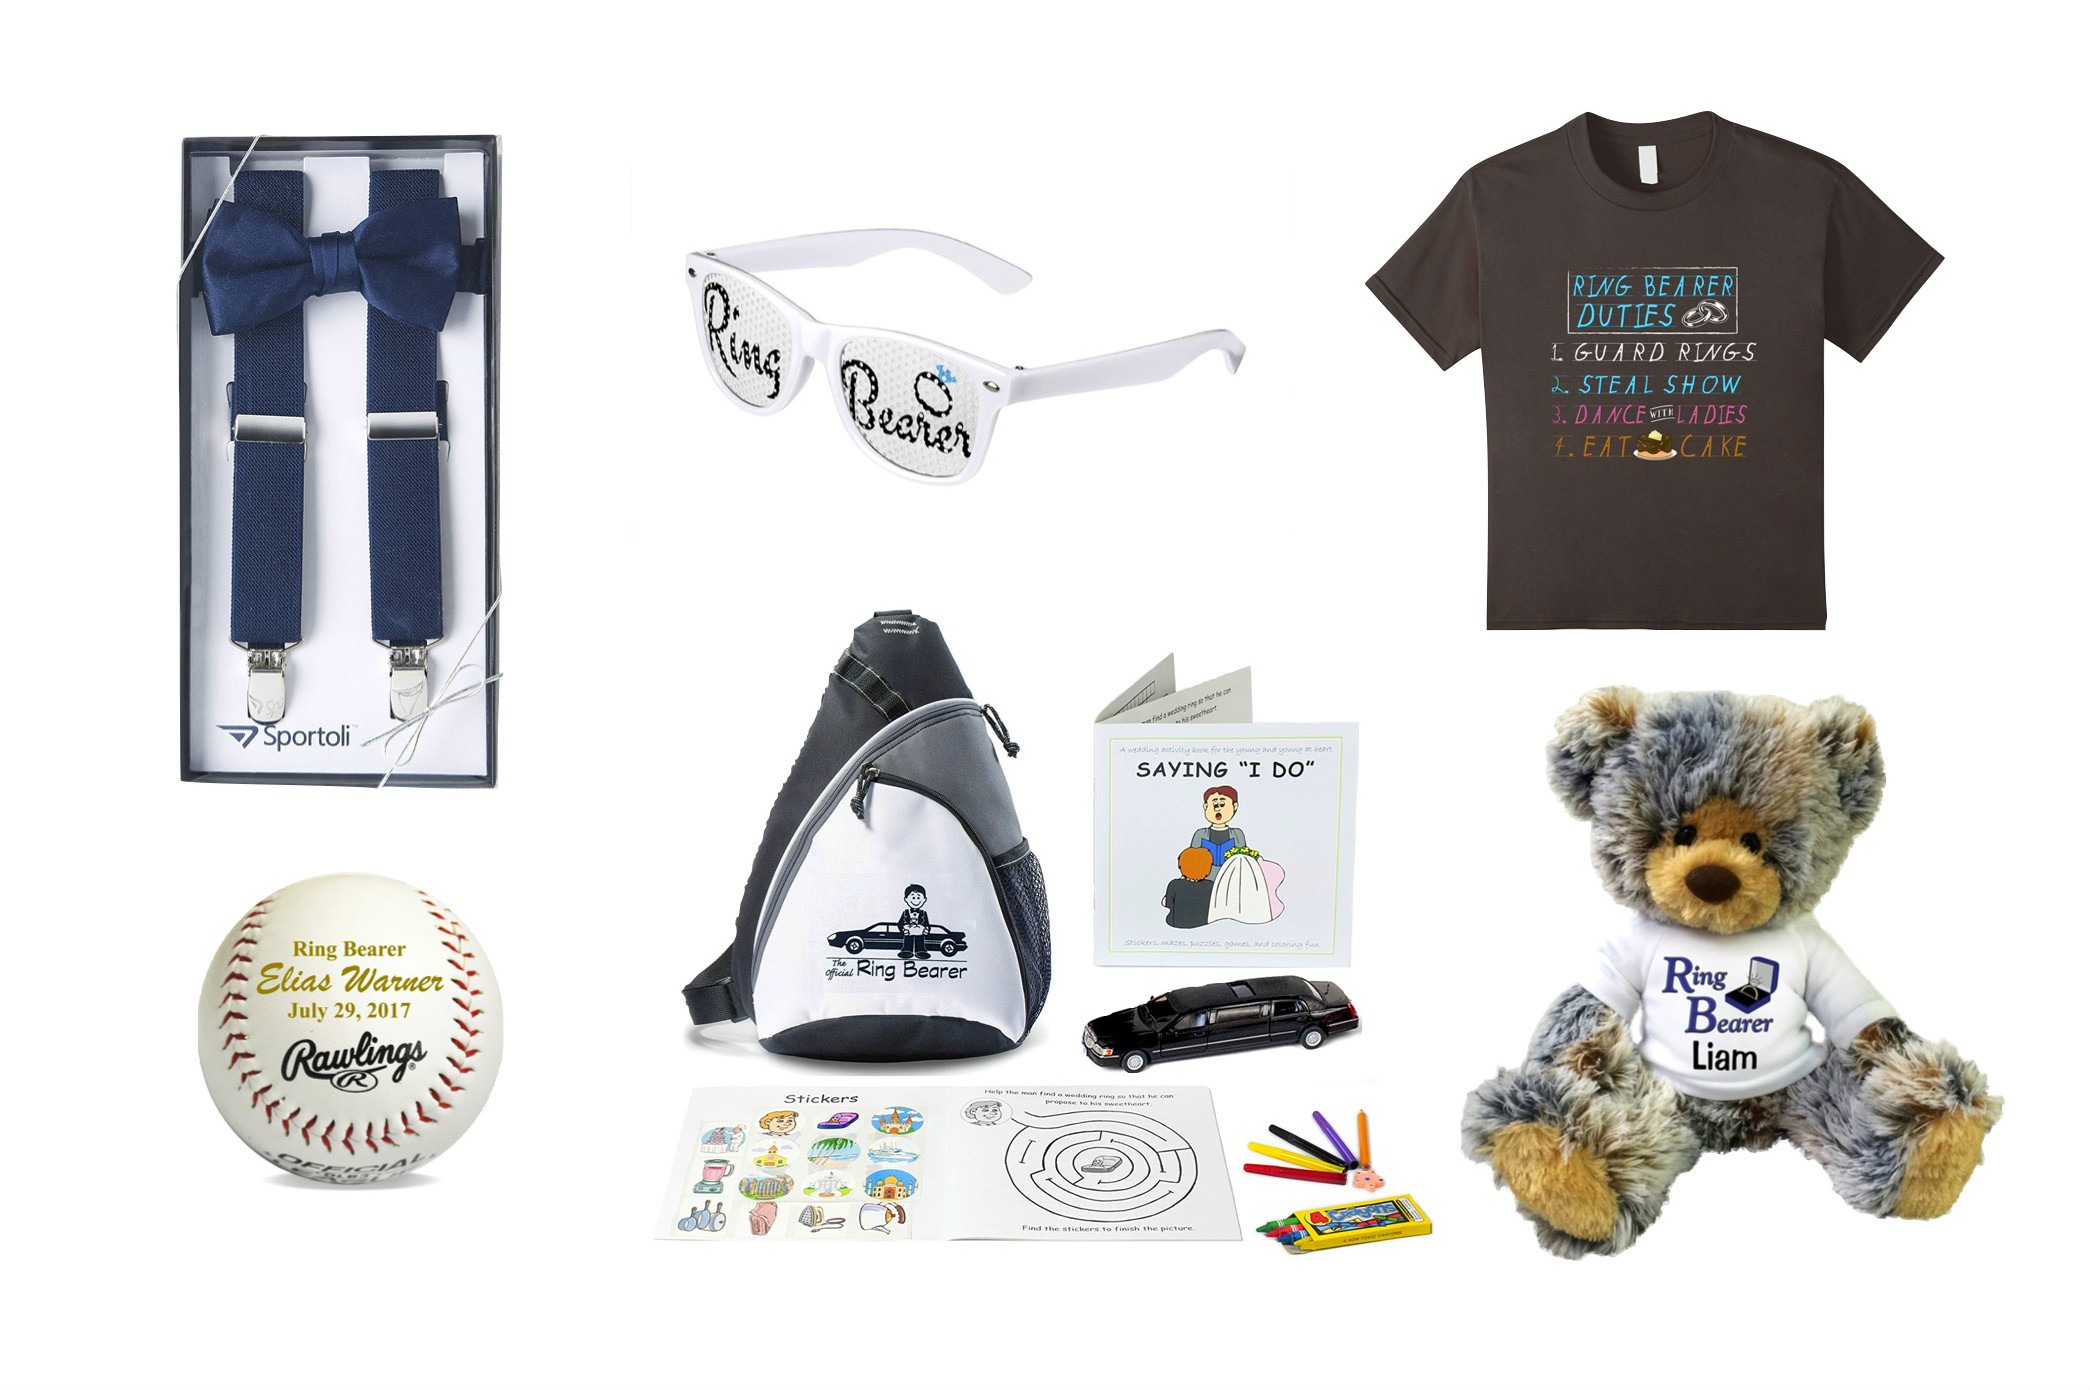 ring bearer gifts, bridal party gifts, ring bearer gift ideas